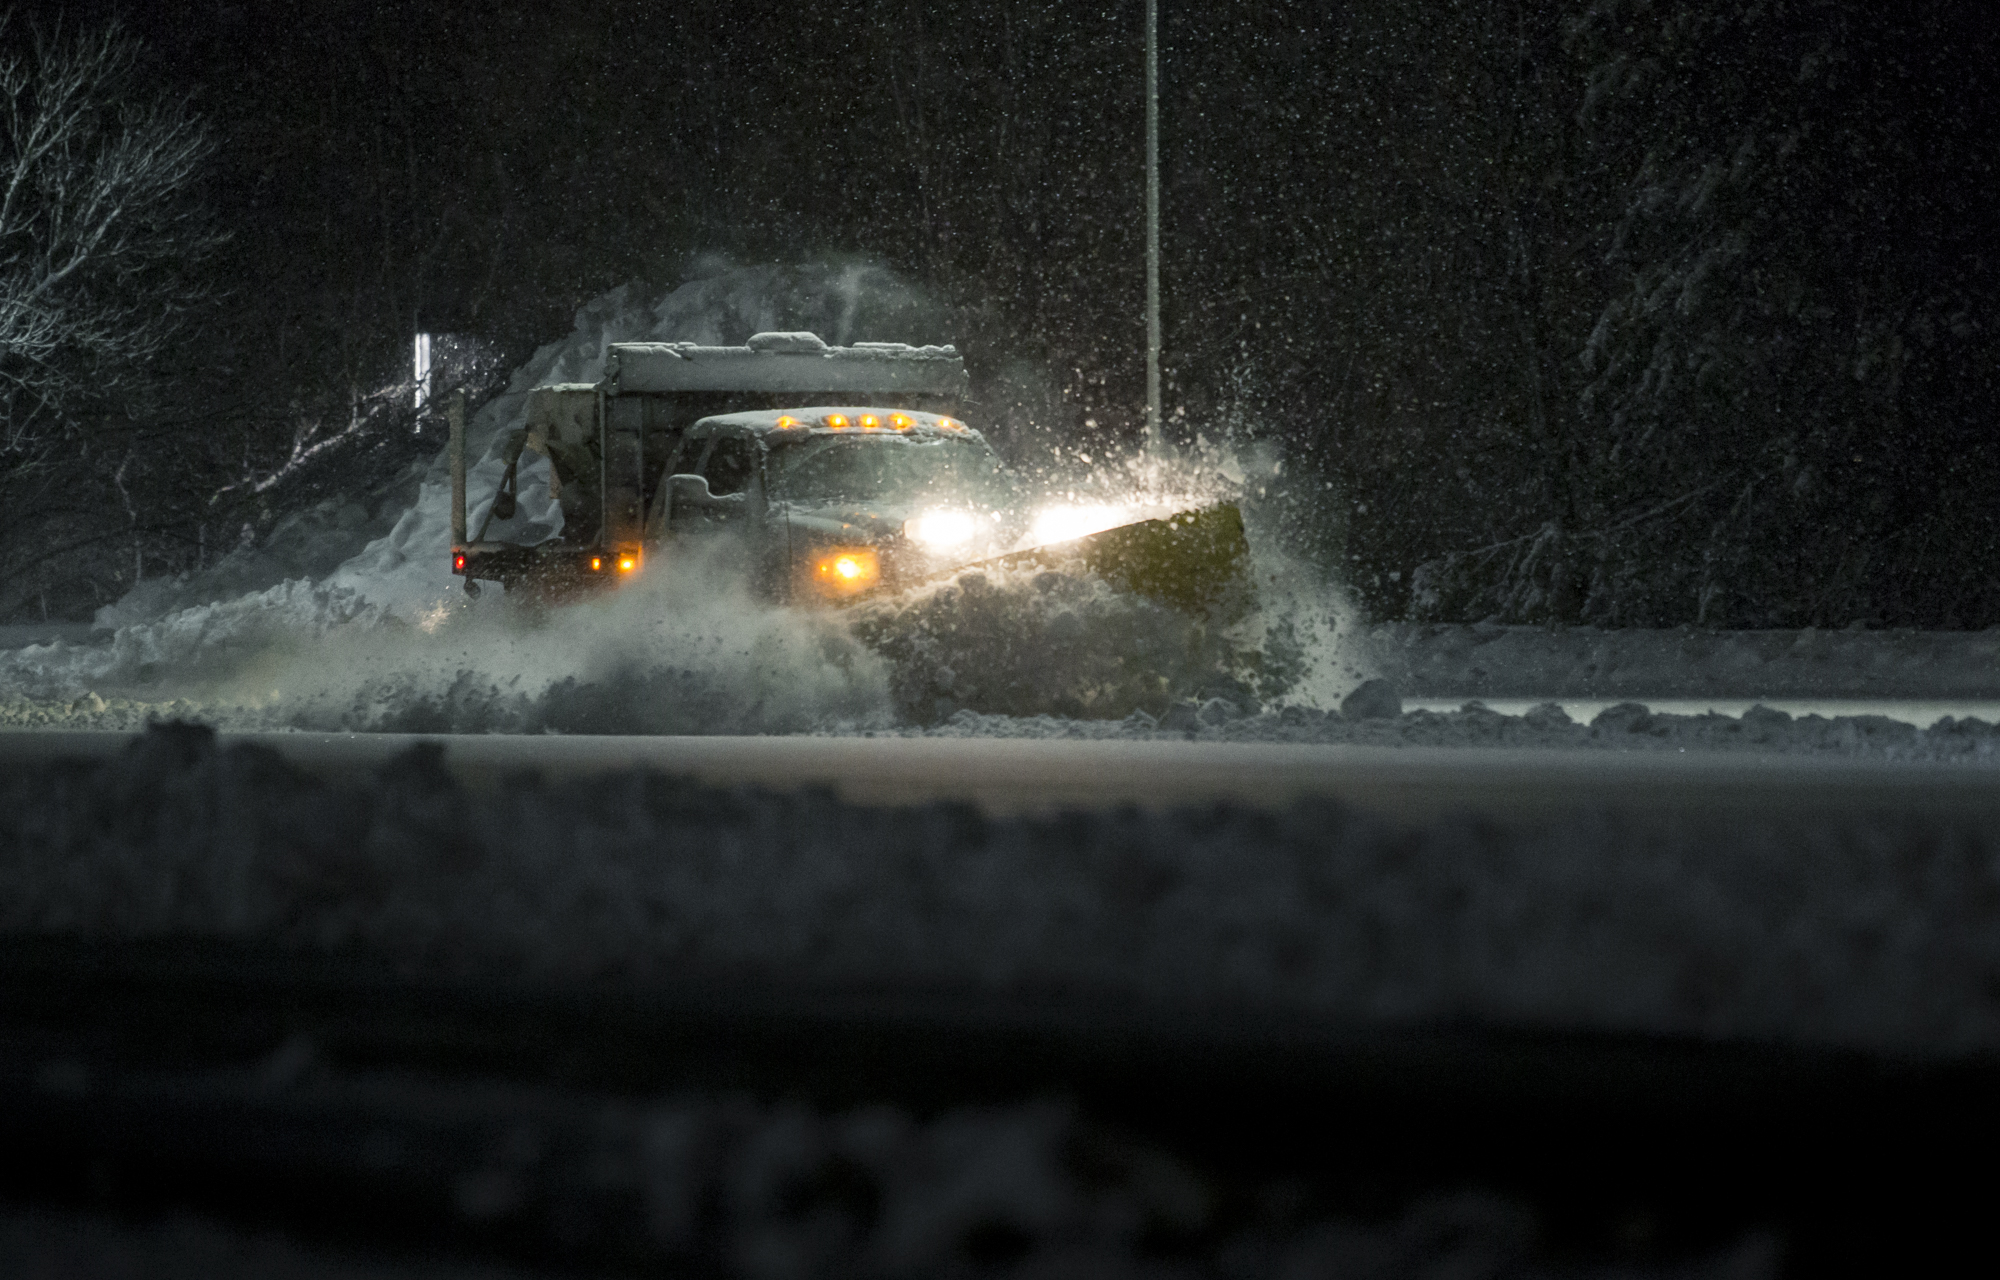 Snow Plow Truck At Night Time In a Storm